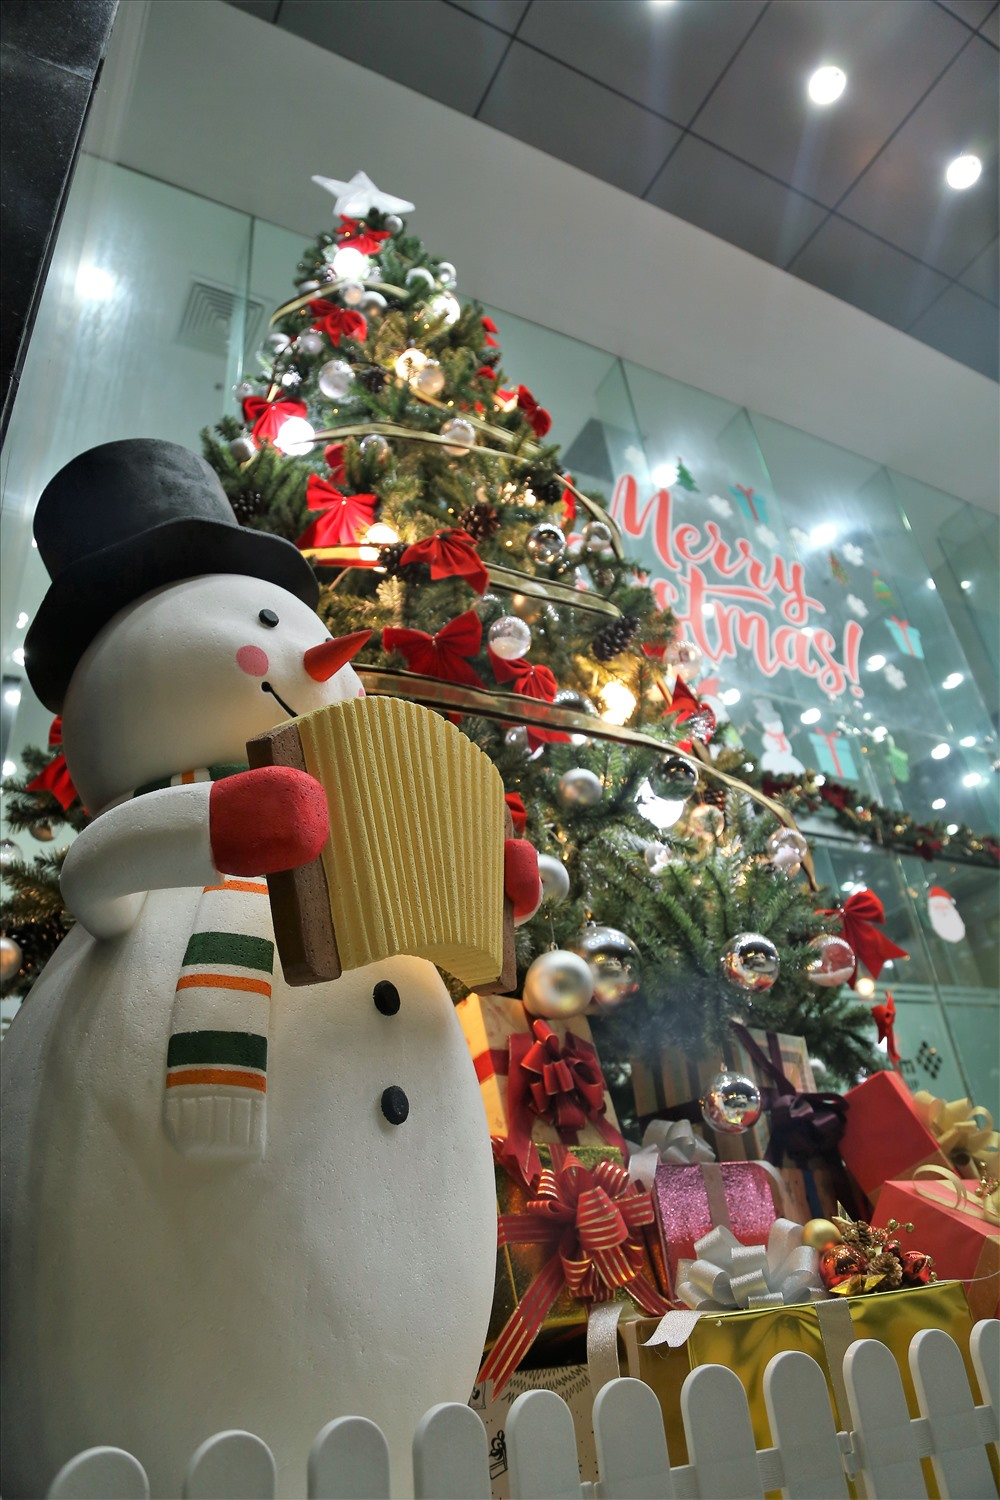 HCM City brightens up for Christmas, entertainment events, entertainment news, entertainment activities, what's on, Vietnam culture, Vietnam tradition, vn news, Vietnam beauty, news Vietnam, Vietnam news, Vietnam net news, vietnamnet news, vietnamnet